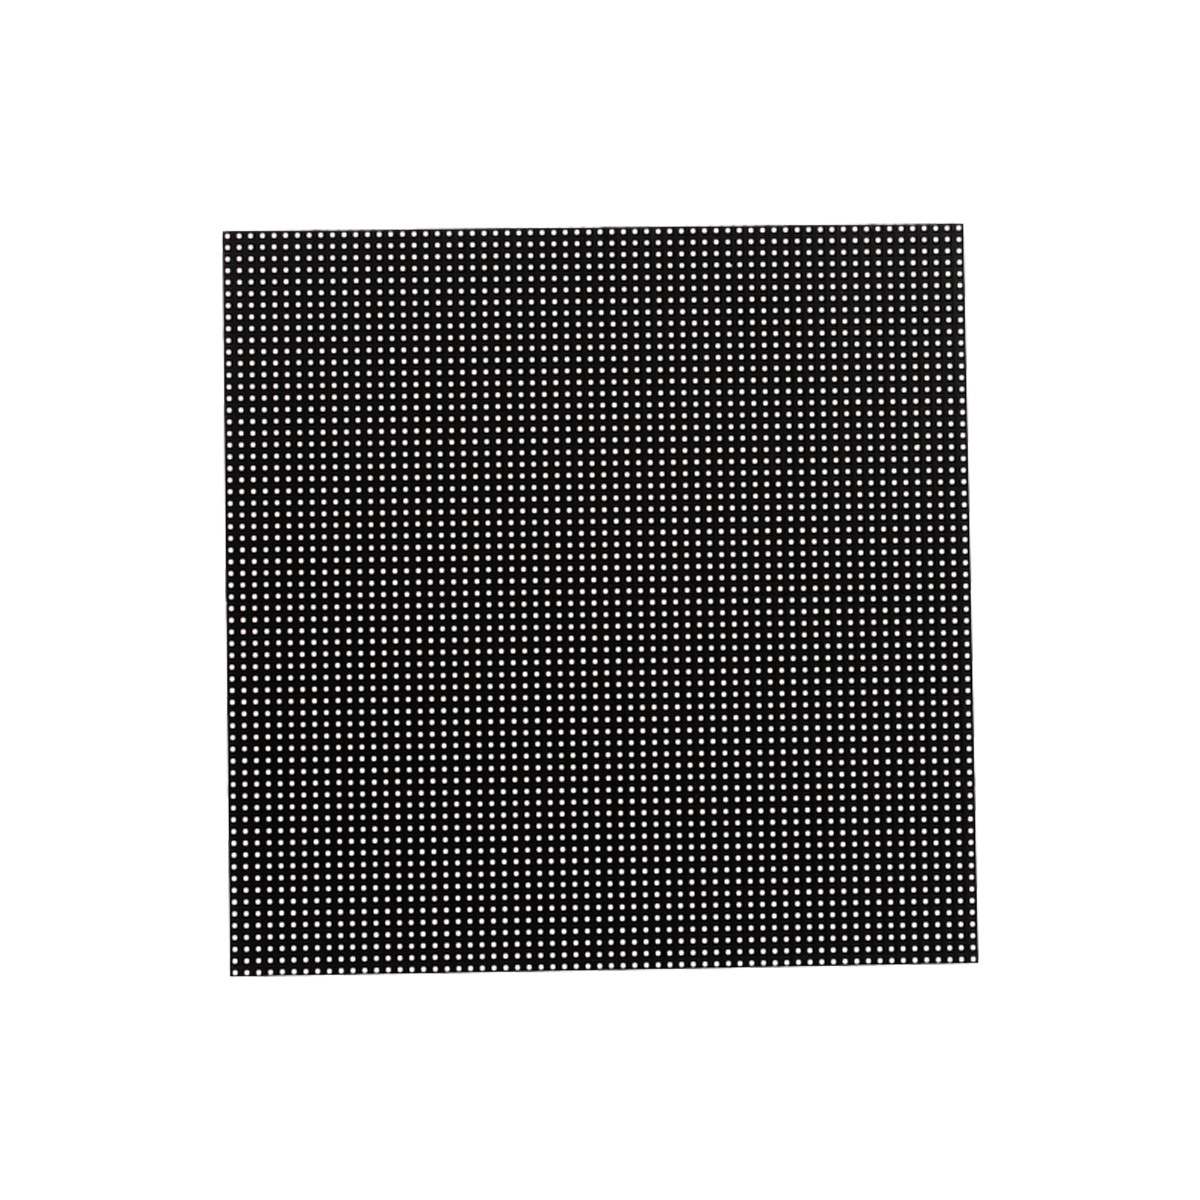 P3.91 Outdoor SMD LED Display Module 250*250mm SMD1921 5000cd/㎡ Brightness 1920Hz High Refresh